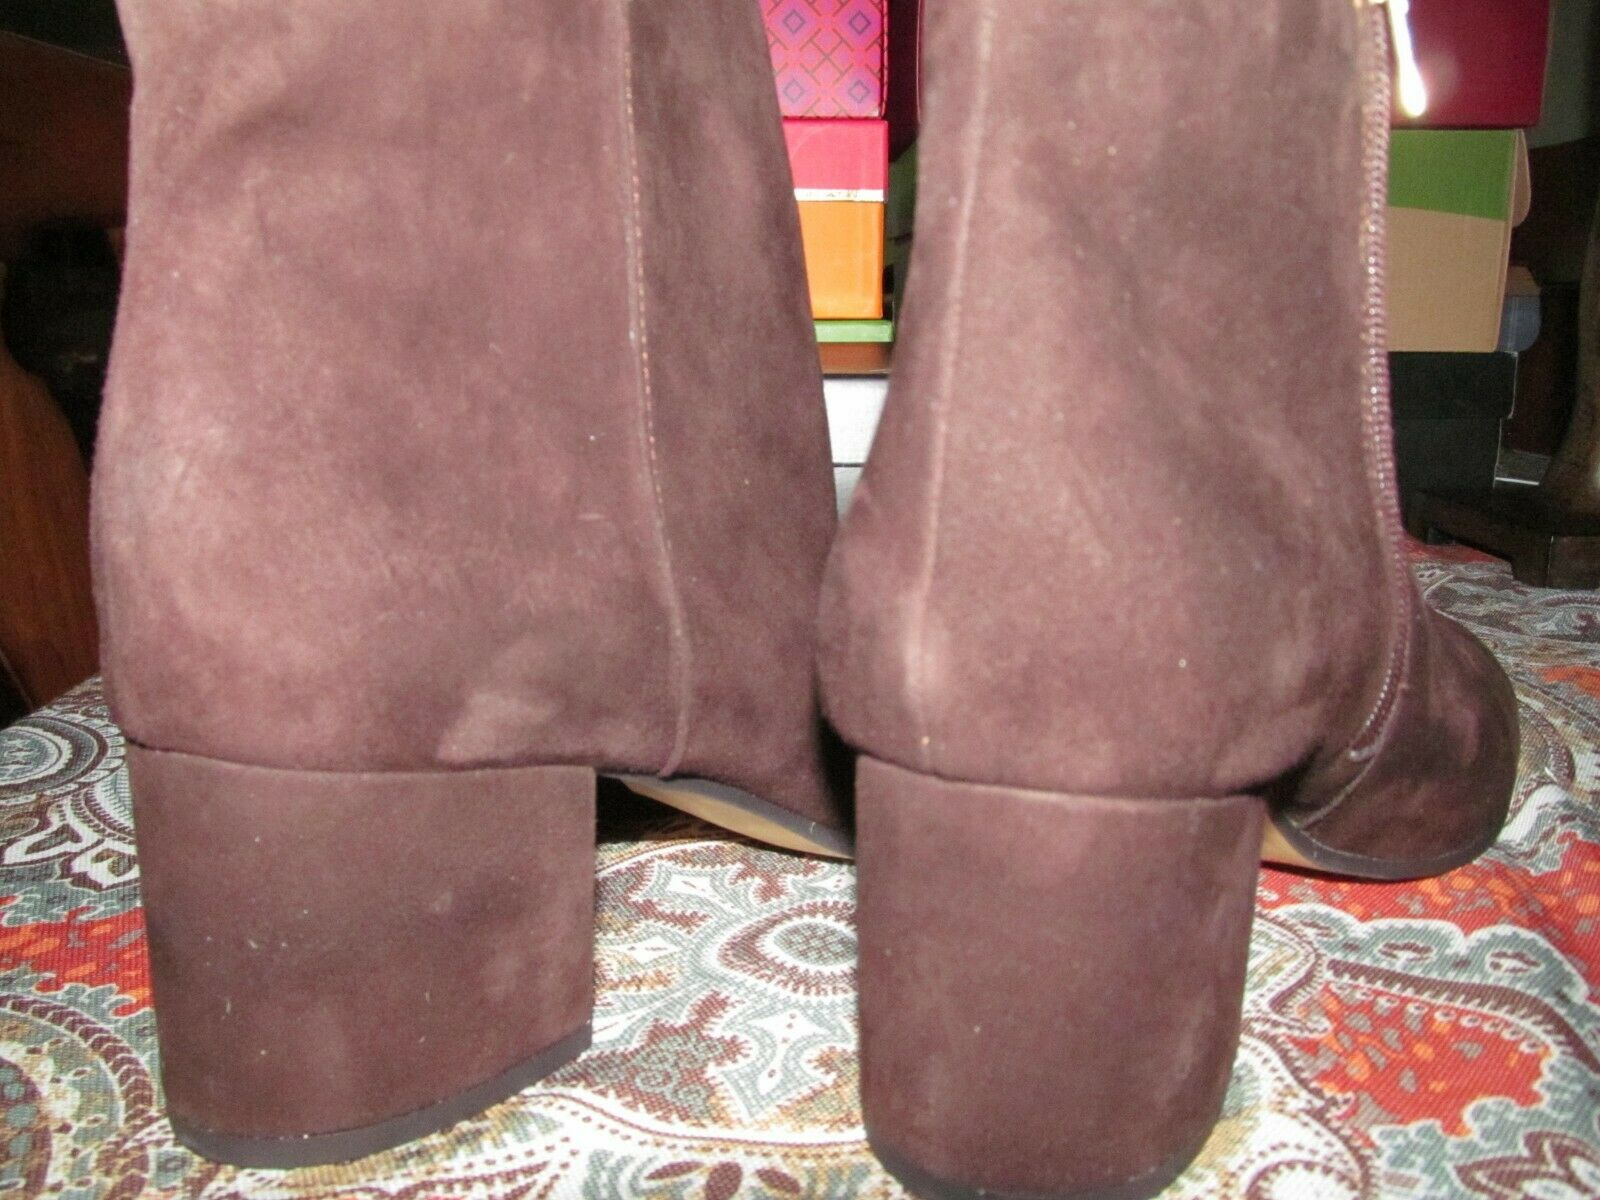 Lord and Taylors 424 Fifth Suede Suede Suede Block-Heel Booties-Brown- SZ 11 M 34edb5